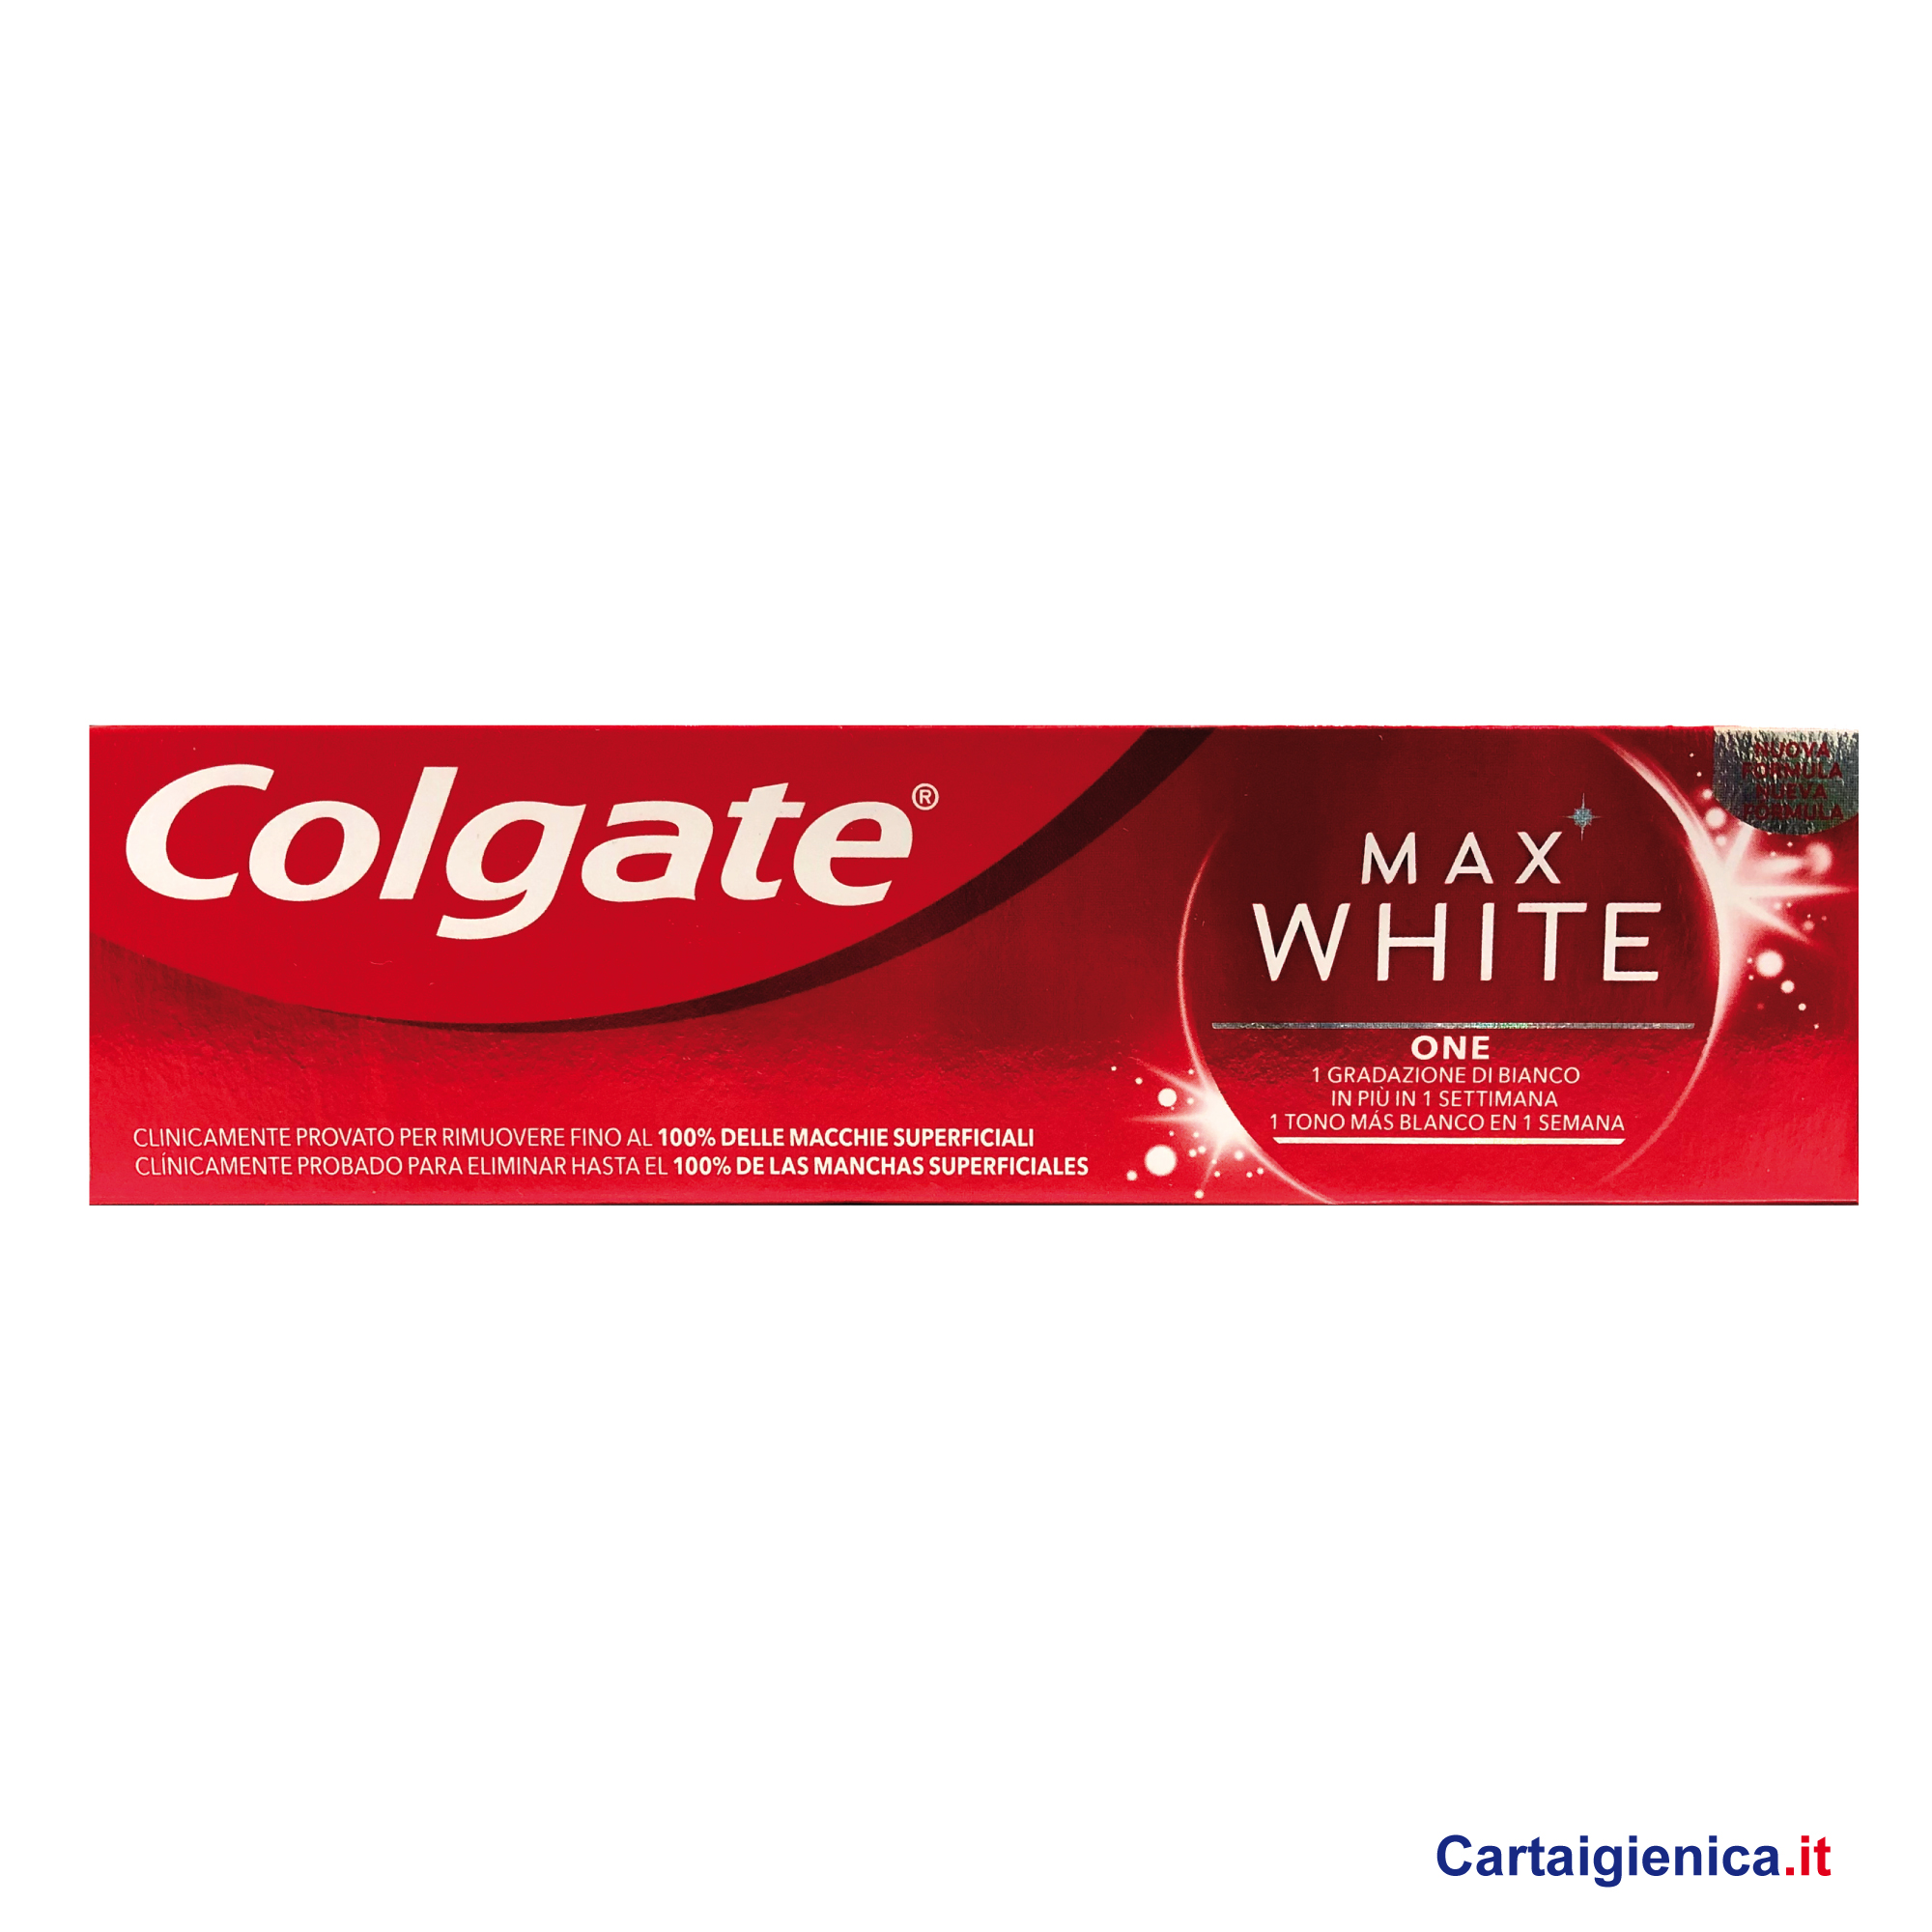 Colgate Dentifricio Max White 75 ml.